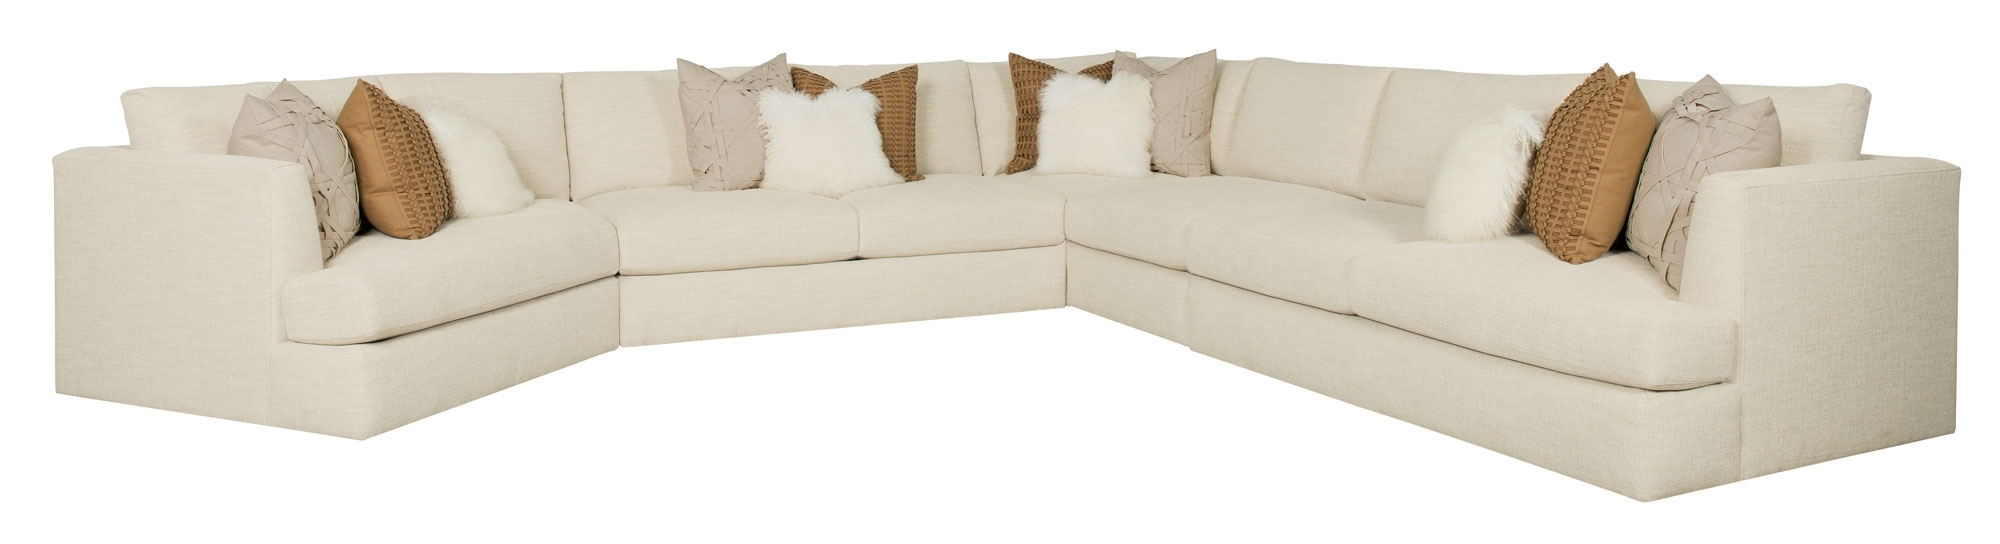 Latest Vt Sectional Sofas With Regard To Furniture : Corner Sofa Rattan Corner Couch Sofa Bed Corner Couch (View 14 of 15)